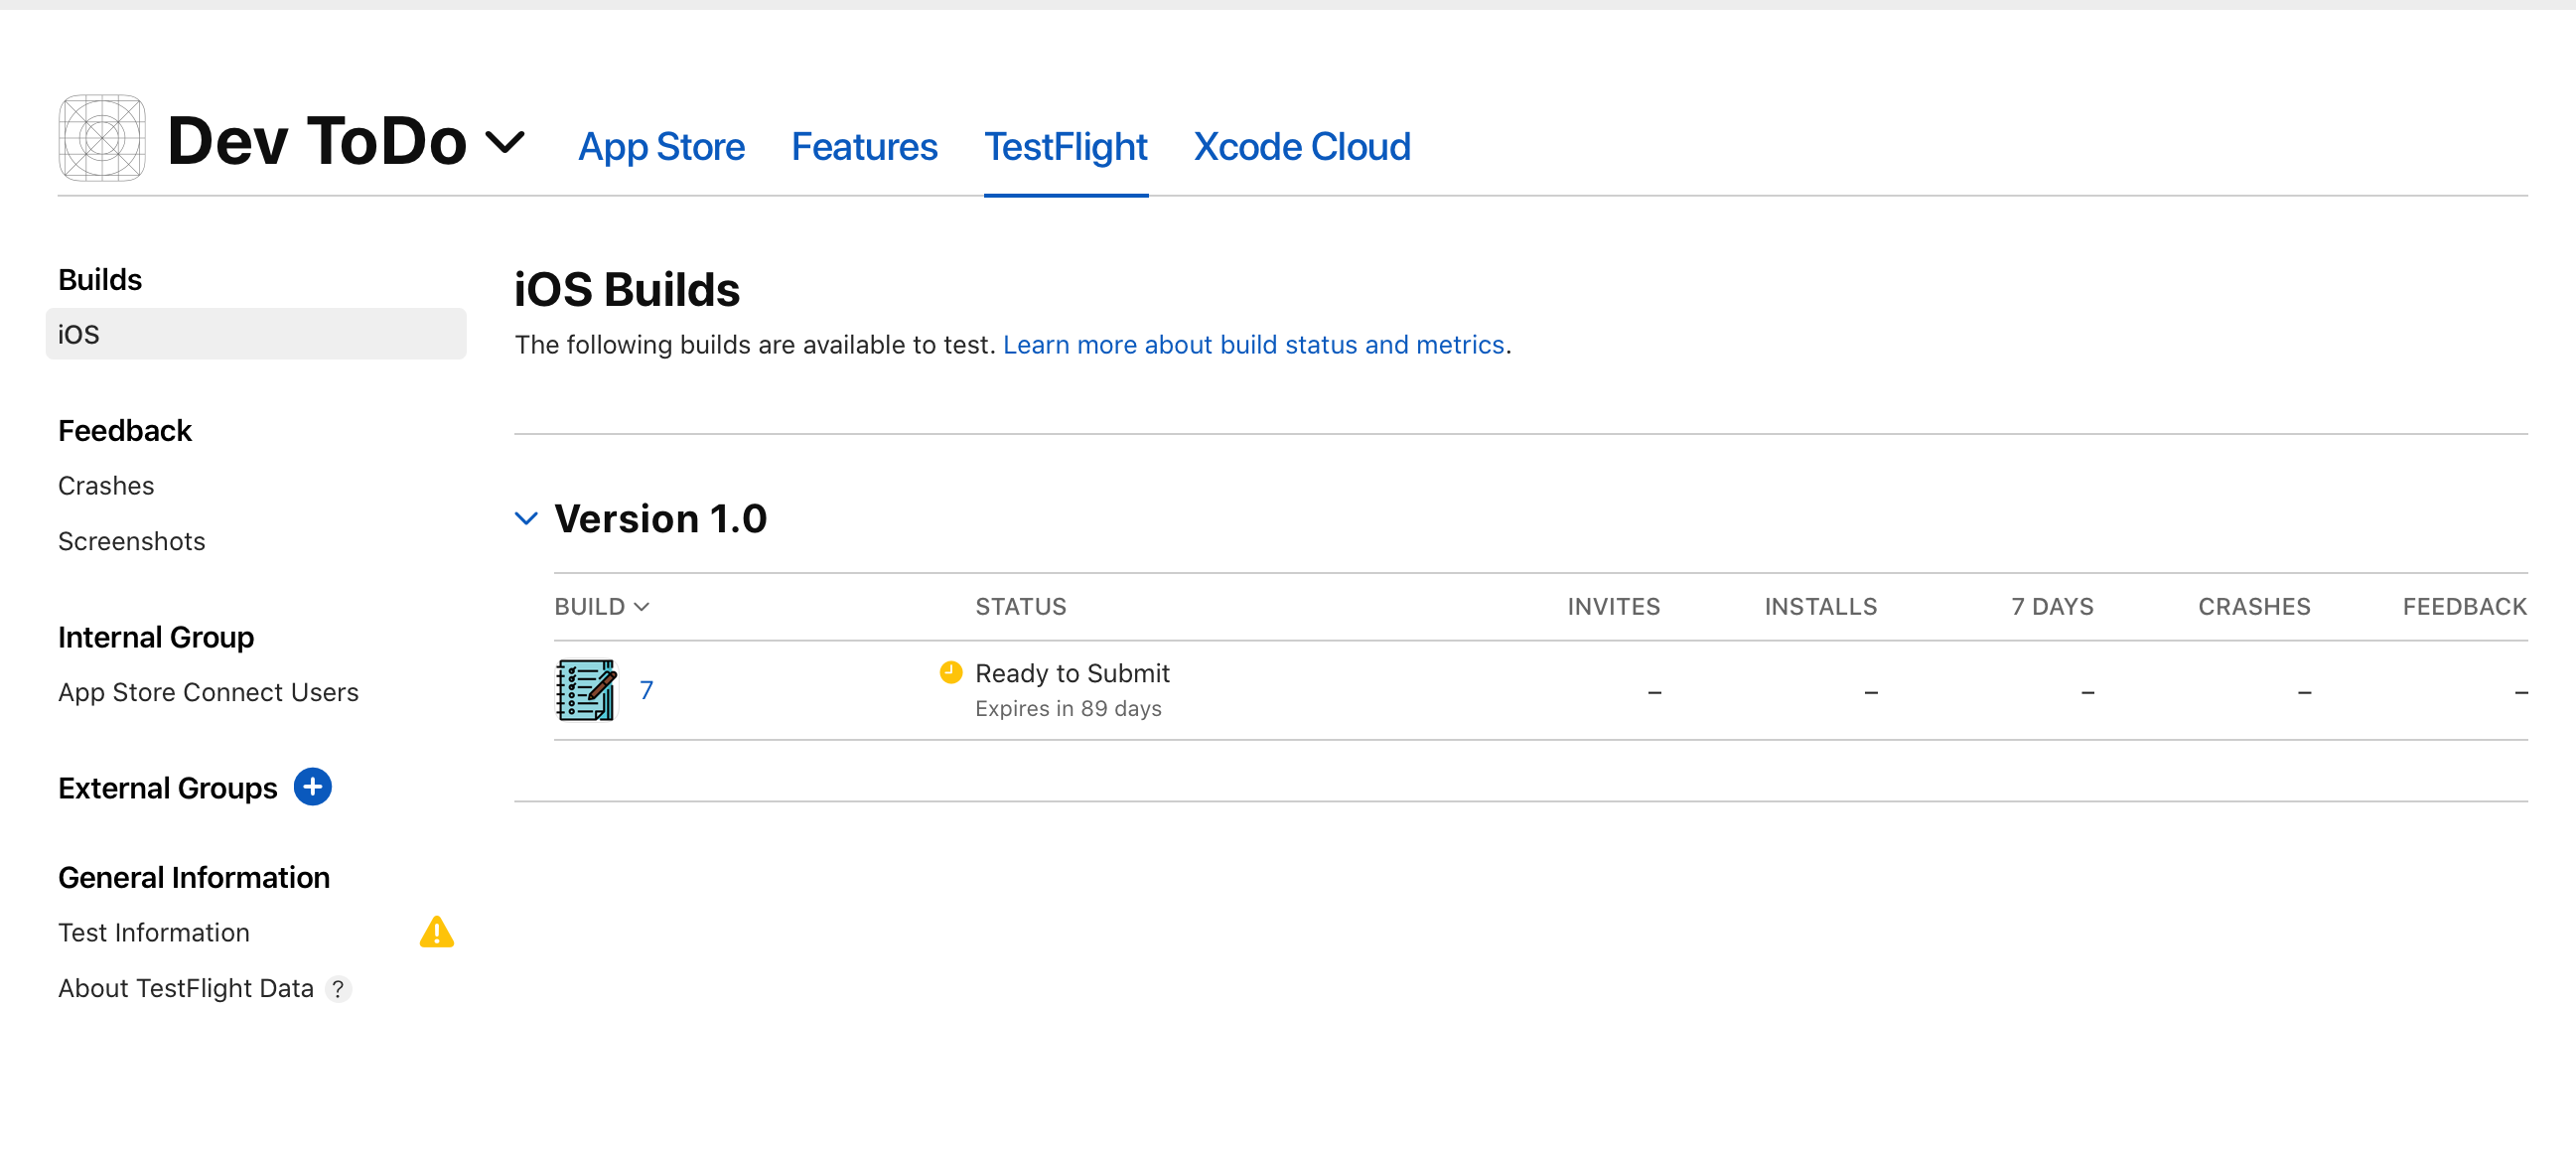 The available build in TestFlight